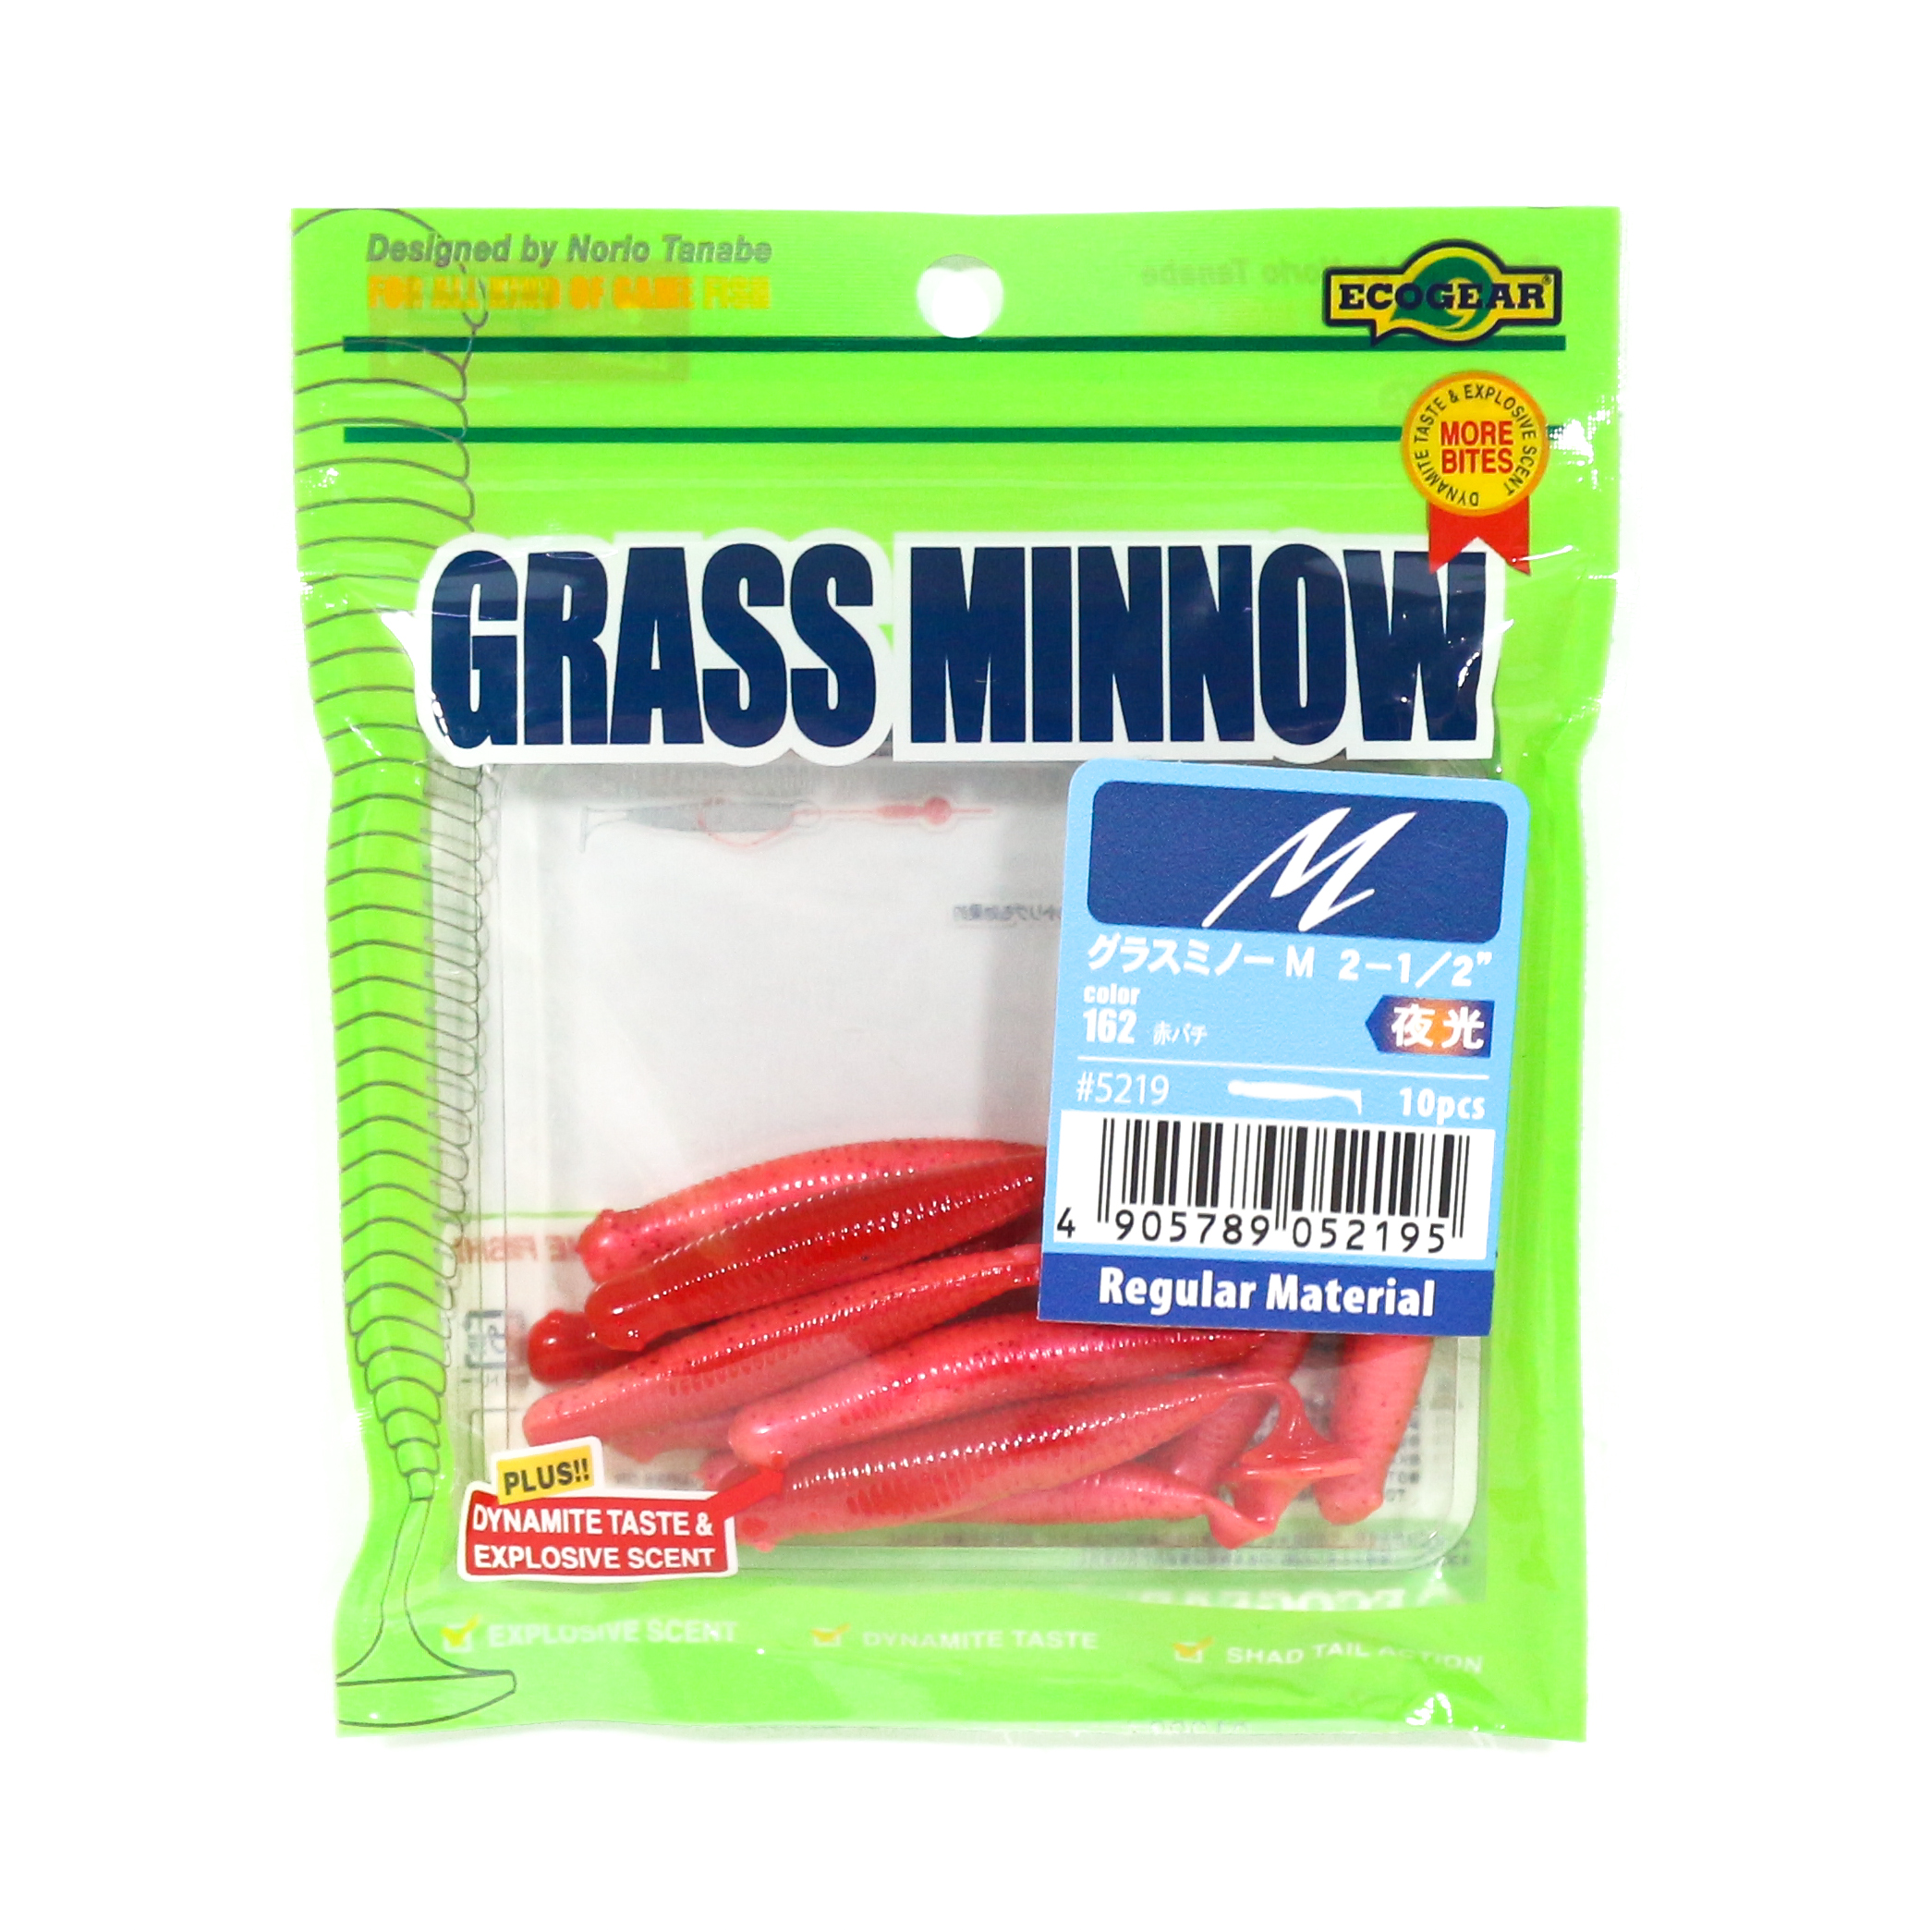 Ecogear Soft Lure Grass Minnow M 2-1/2 Inch 10 piece per pack 162 (2195)